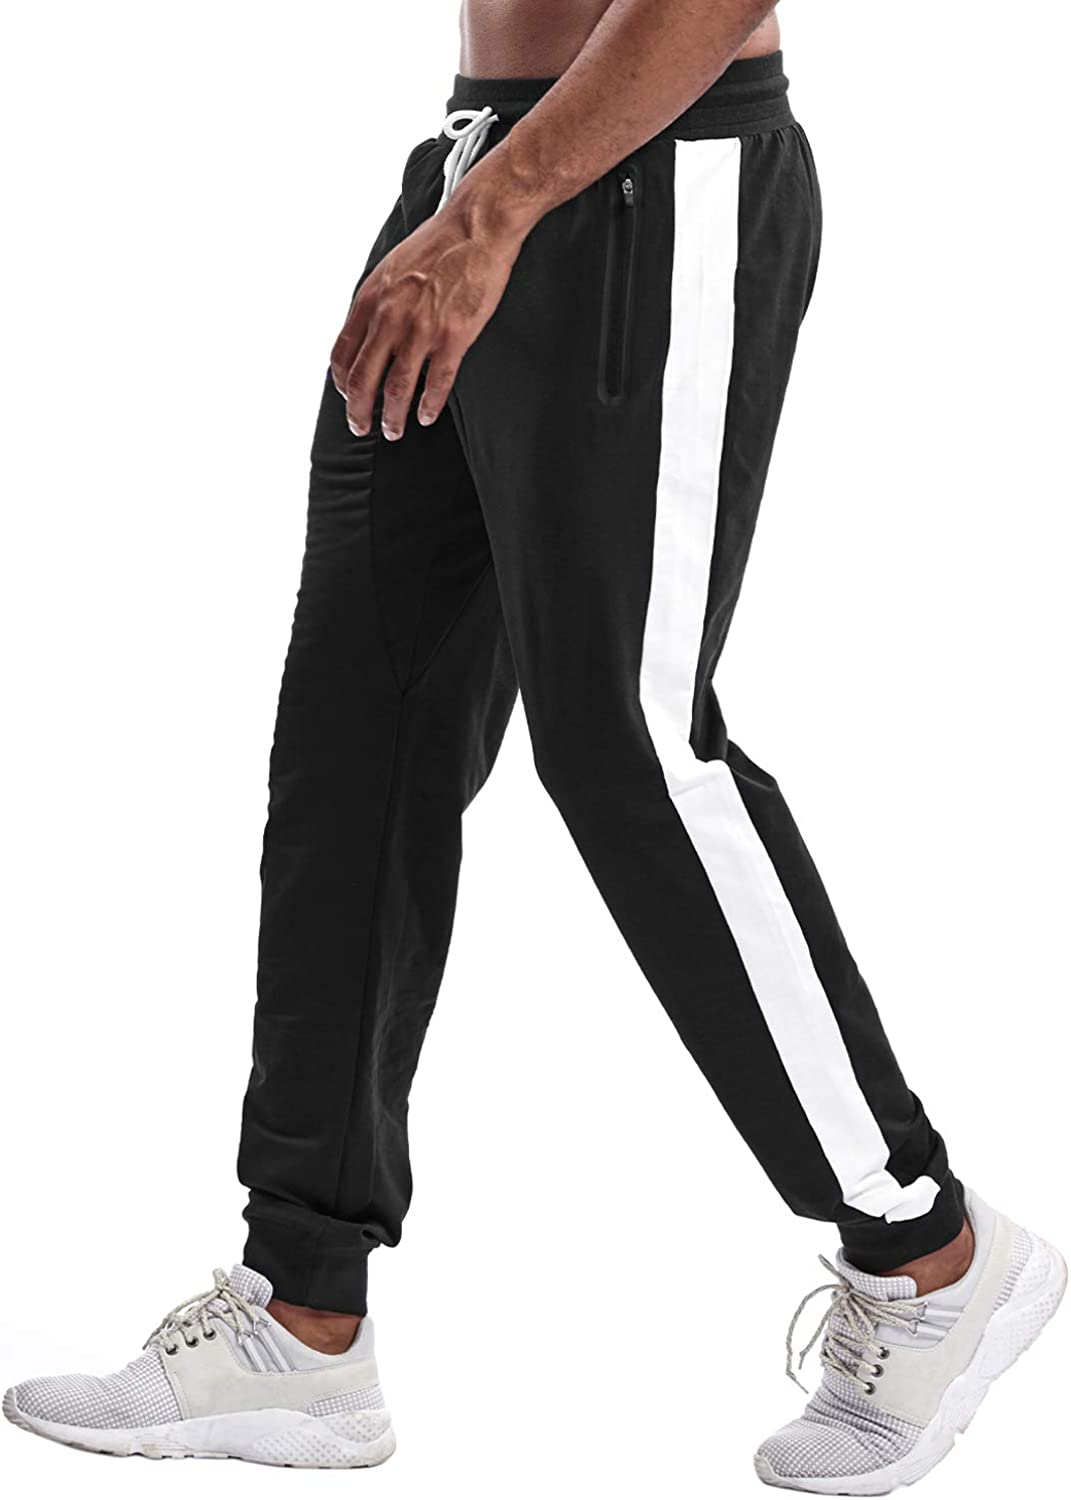 Amazon.com: TBMPOY Men's Athletic Running Pants Joggers Workout Sweatpants  with Zipper Pockets: Clothing